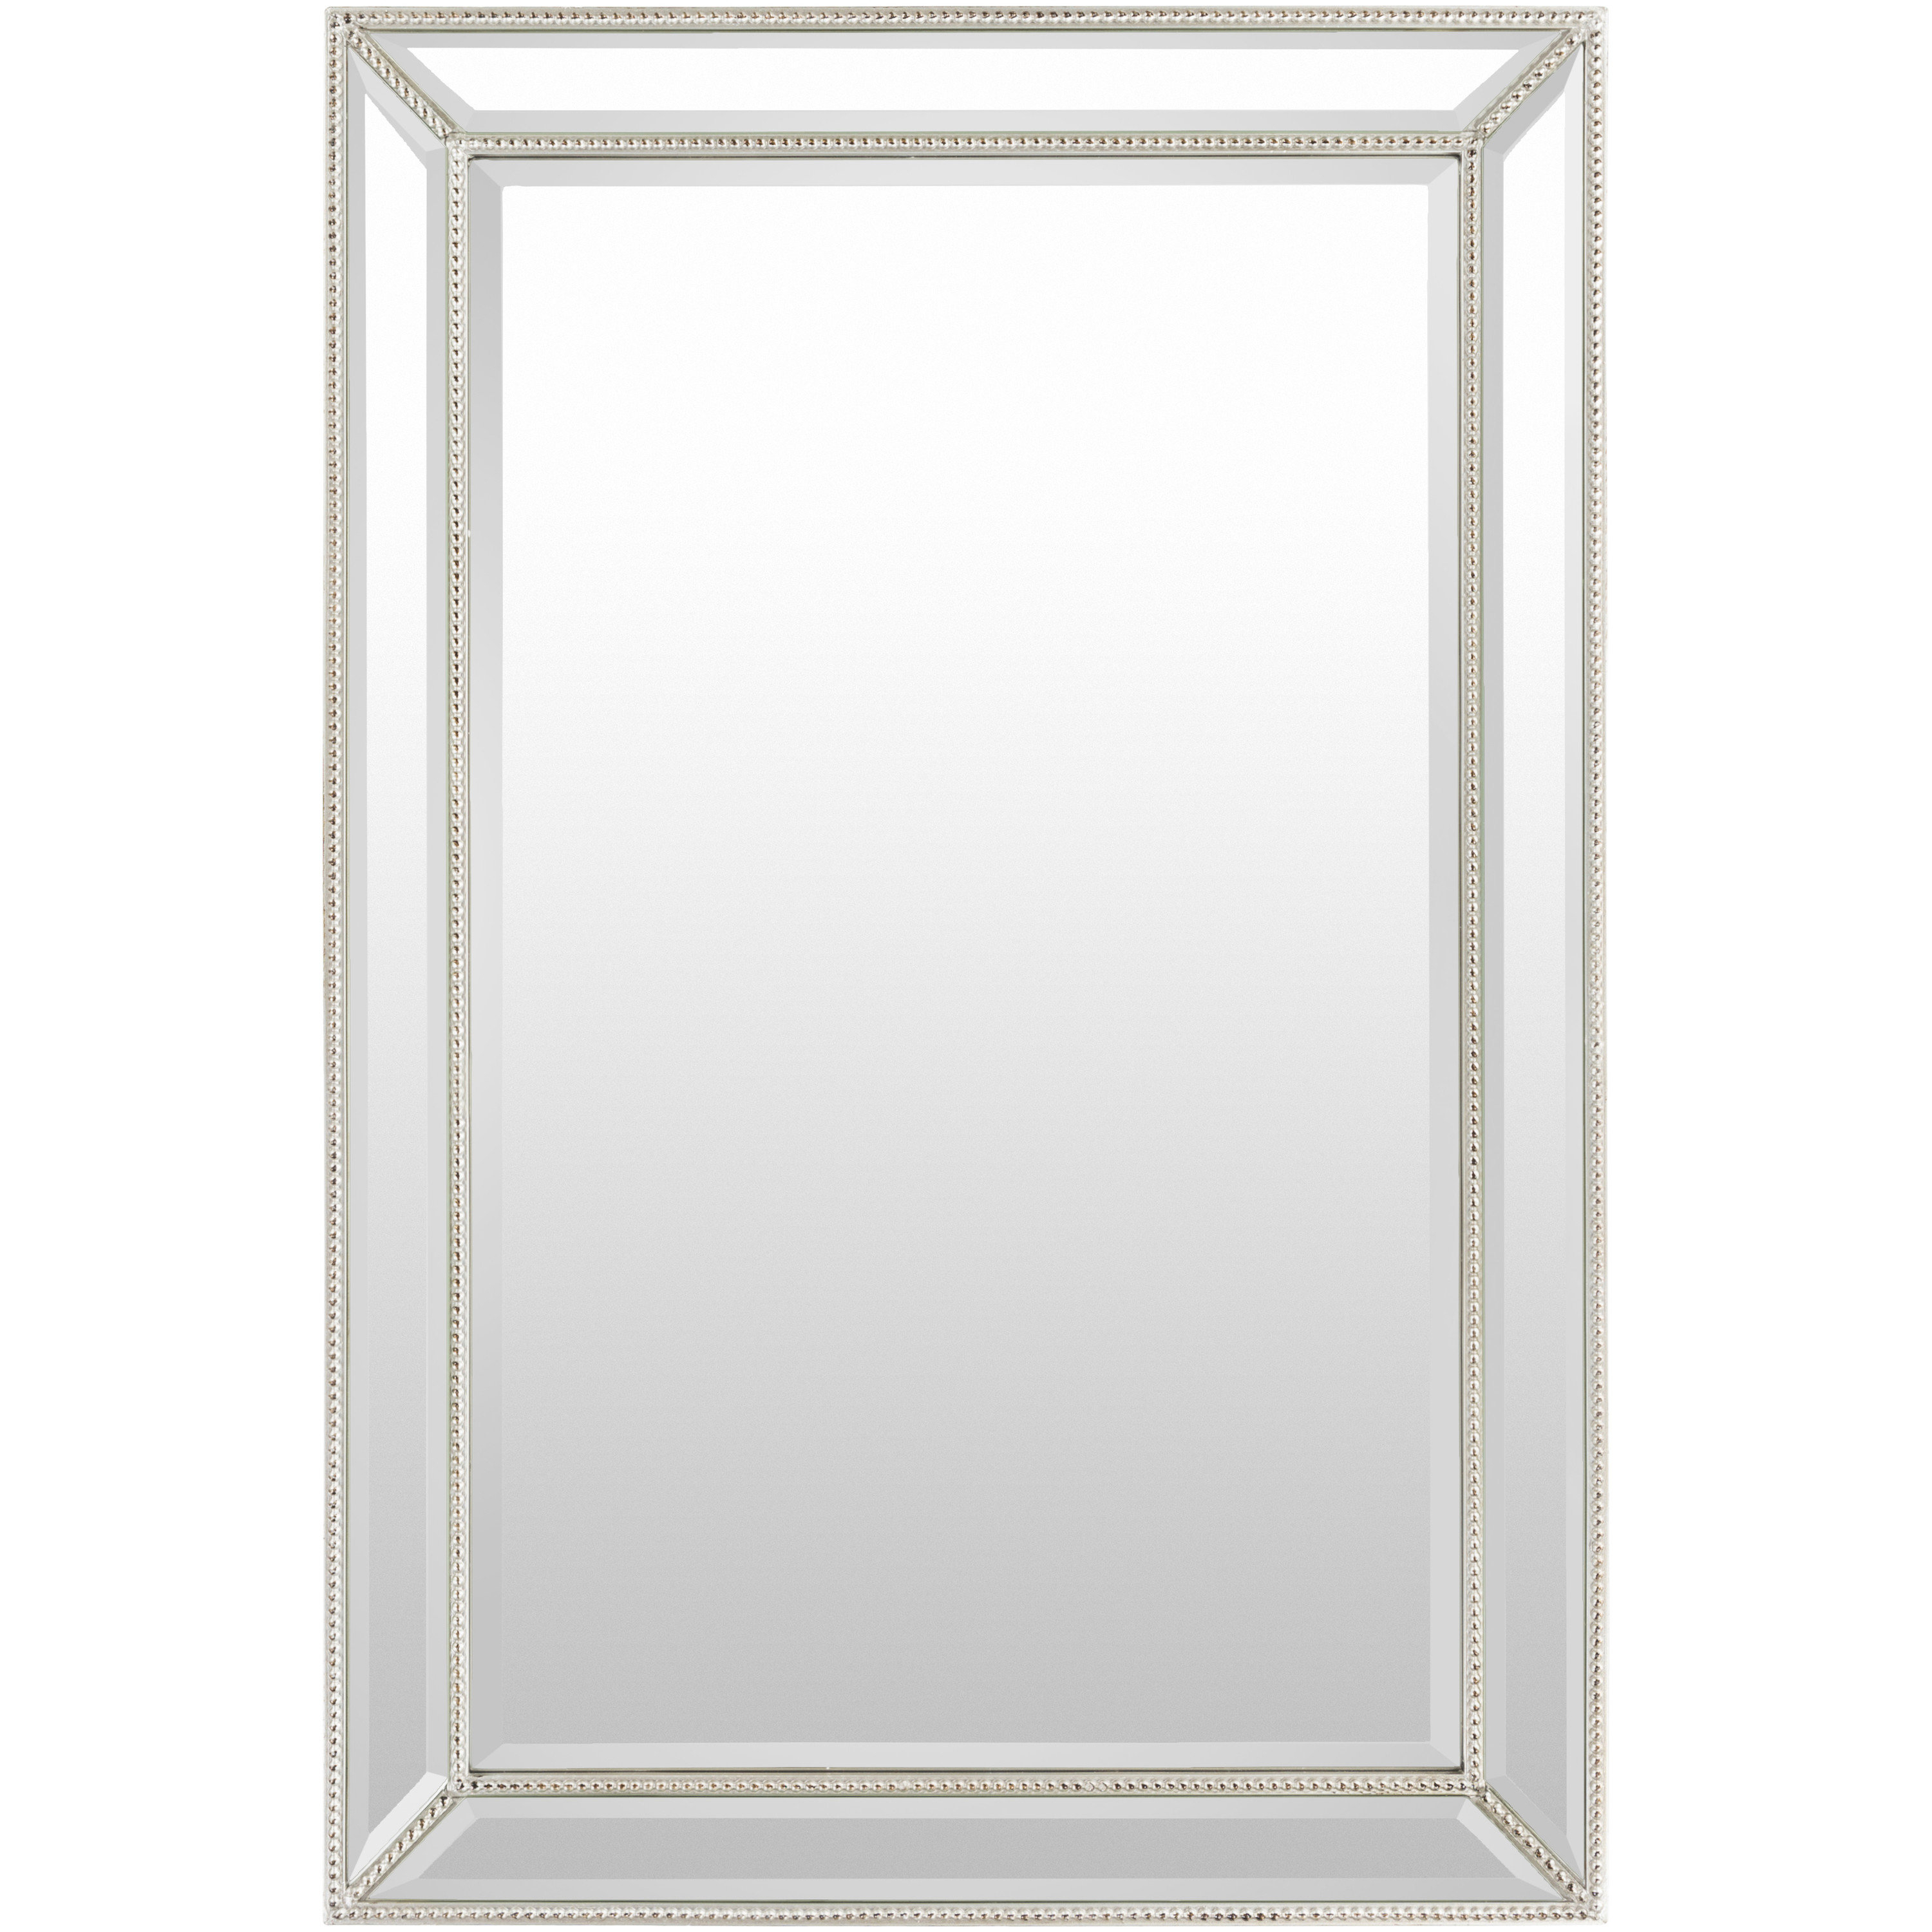 Tutuala Traditional Beveled Accent Mirror Intended For Traditional Beveled Accent Mirrors (View 20 of 30)